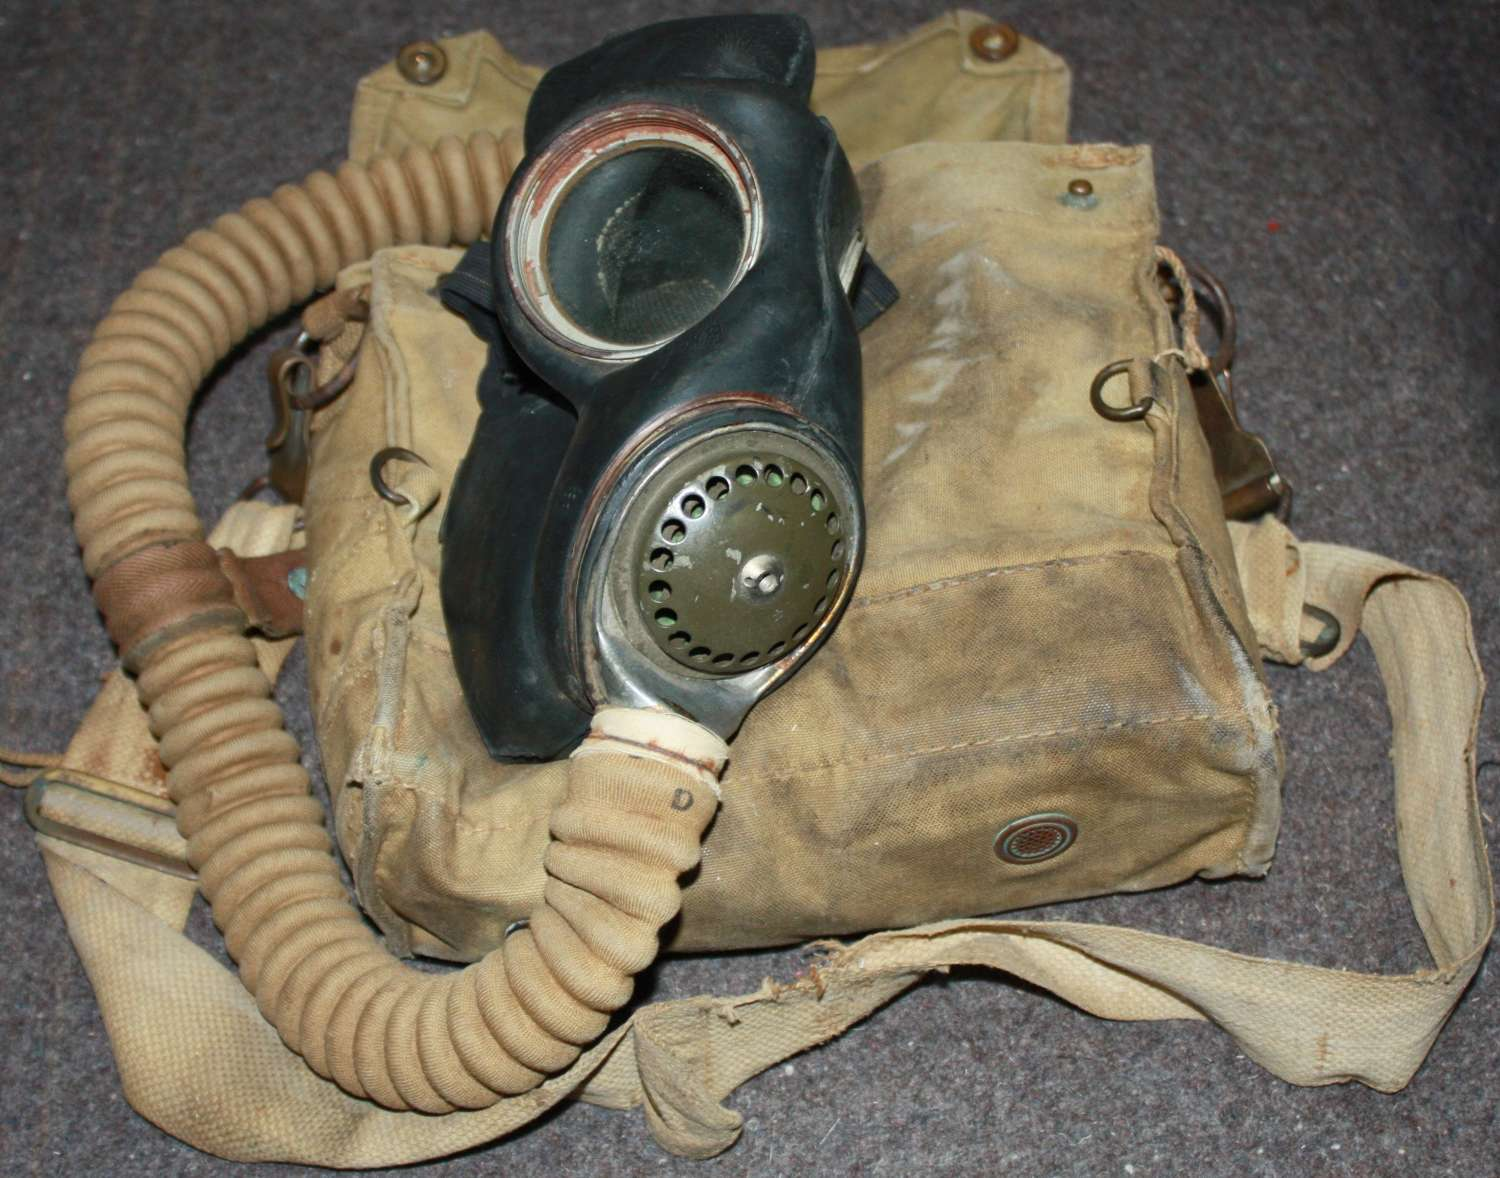 A WWII RAF ISSUED GAS MASK SEE PICS